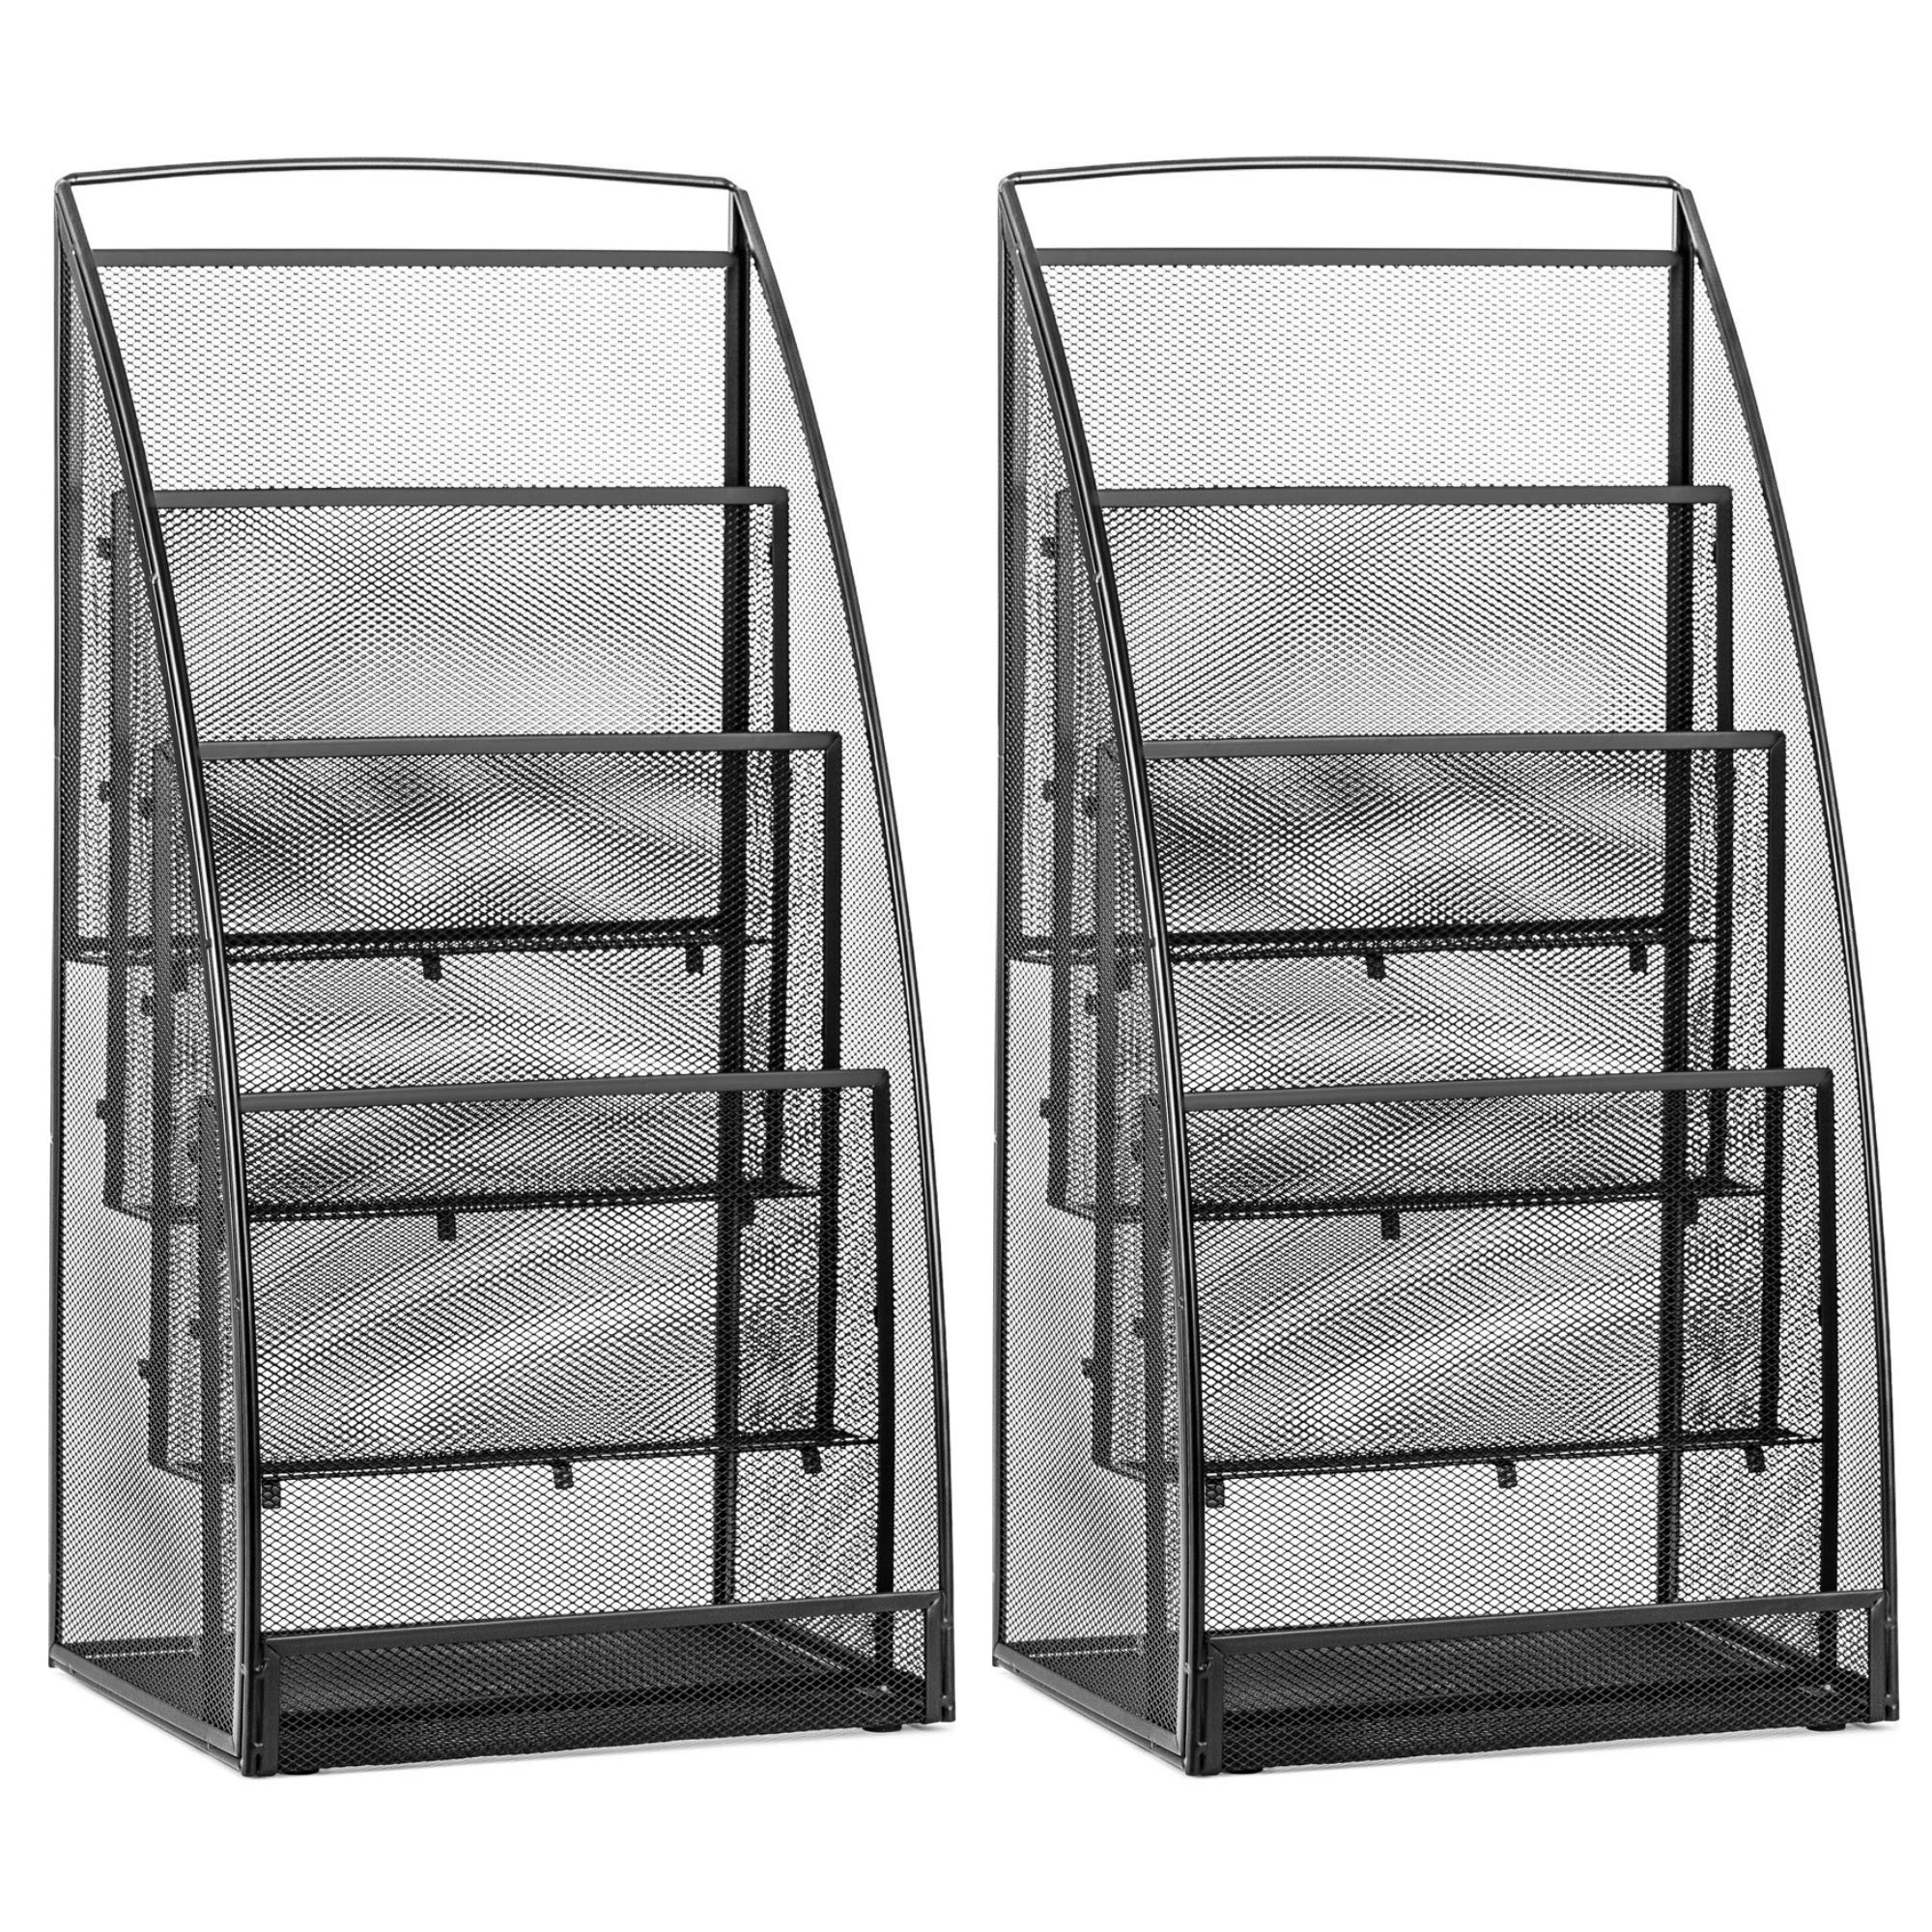 Halter Steel Mesh Magazine Rack/Literature Rack - 4 Pocket - Black - 2 Pack